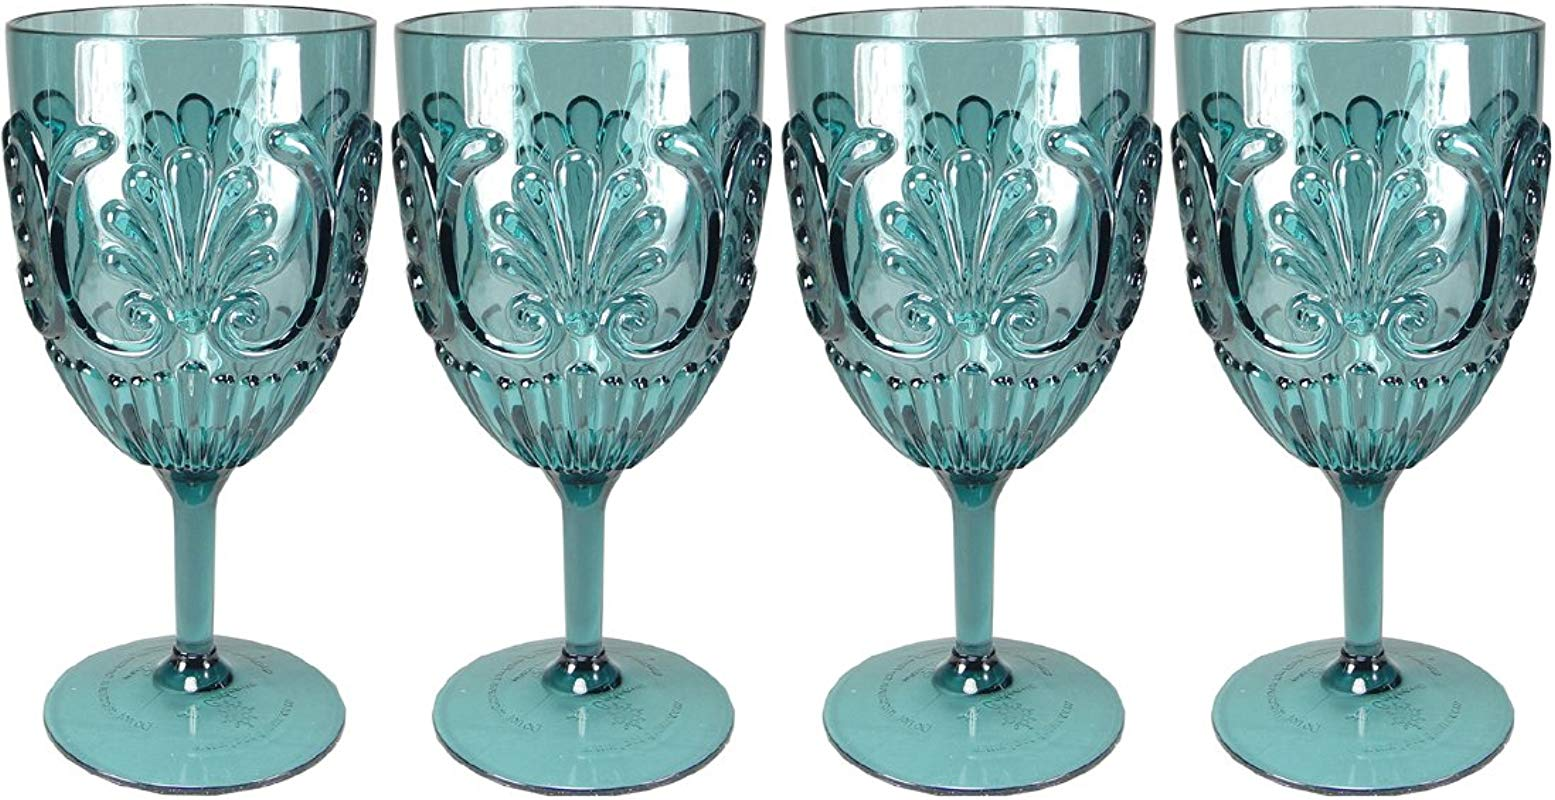 Le Cadeaux Classic Fleur Teal Blue 4 Piece Wine Glass Set